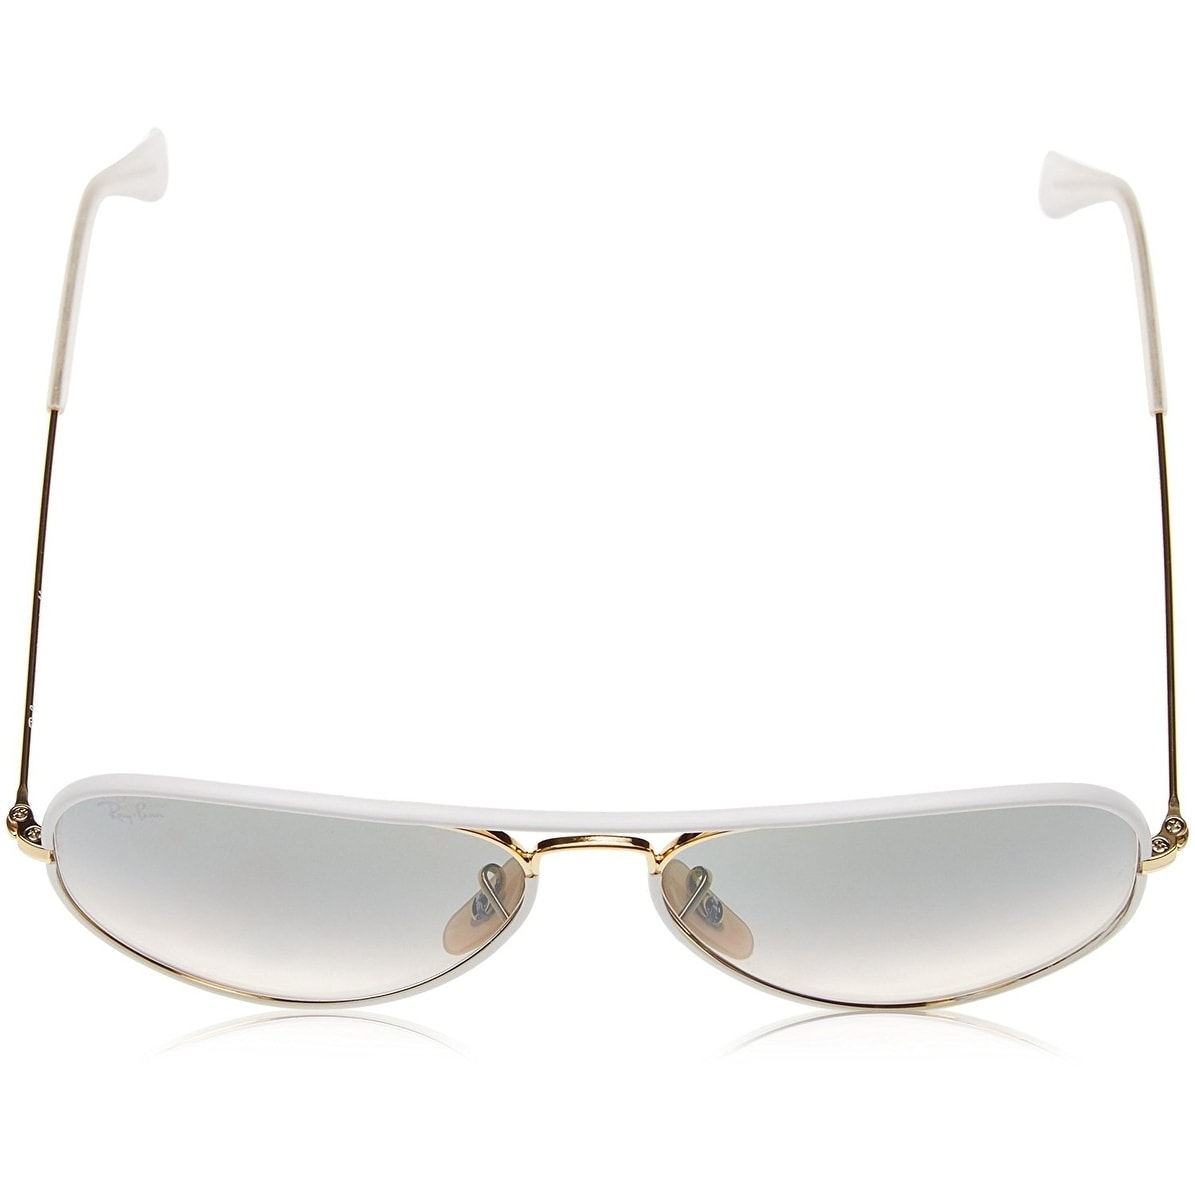 4f7fec406 Shop Ray-Ban RB3025JM Aviator Full Color White/Gold Frame Light Grey  Gradient 55mm Lens Sunglasses - Free Shipping Today - Overstock - 20707678